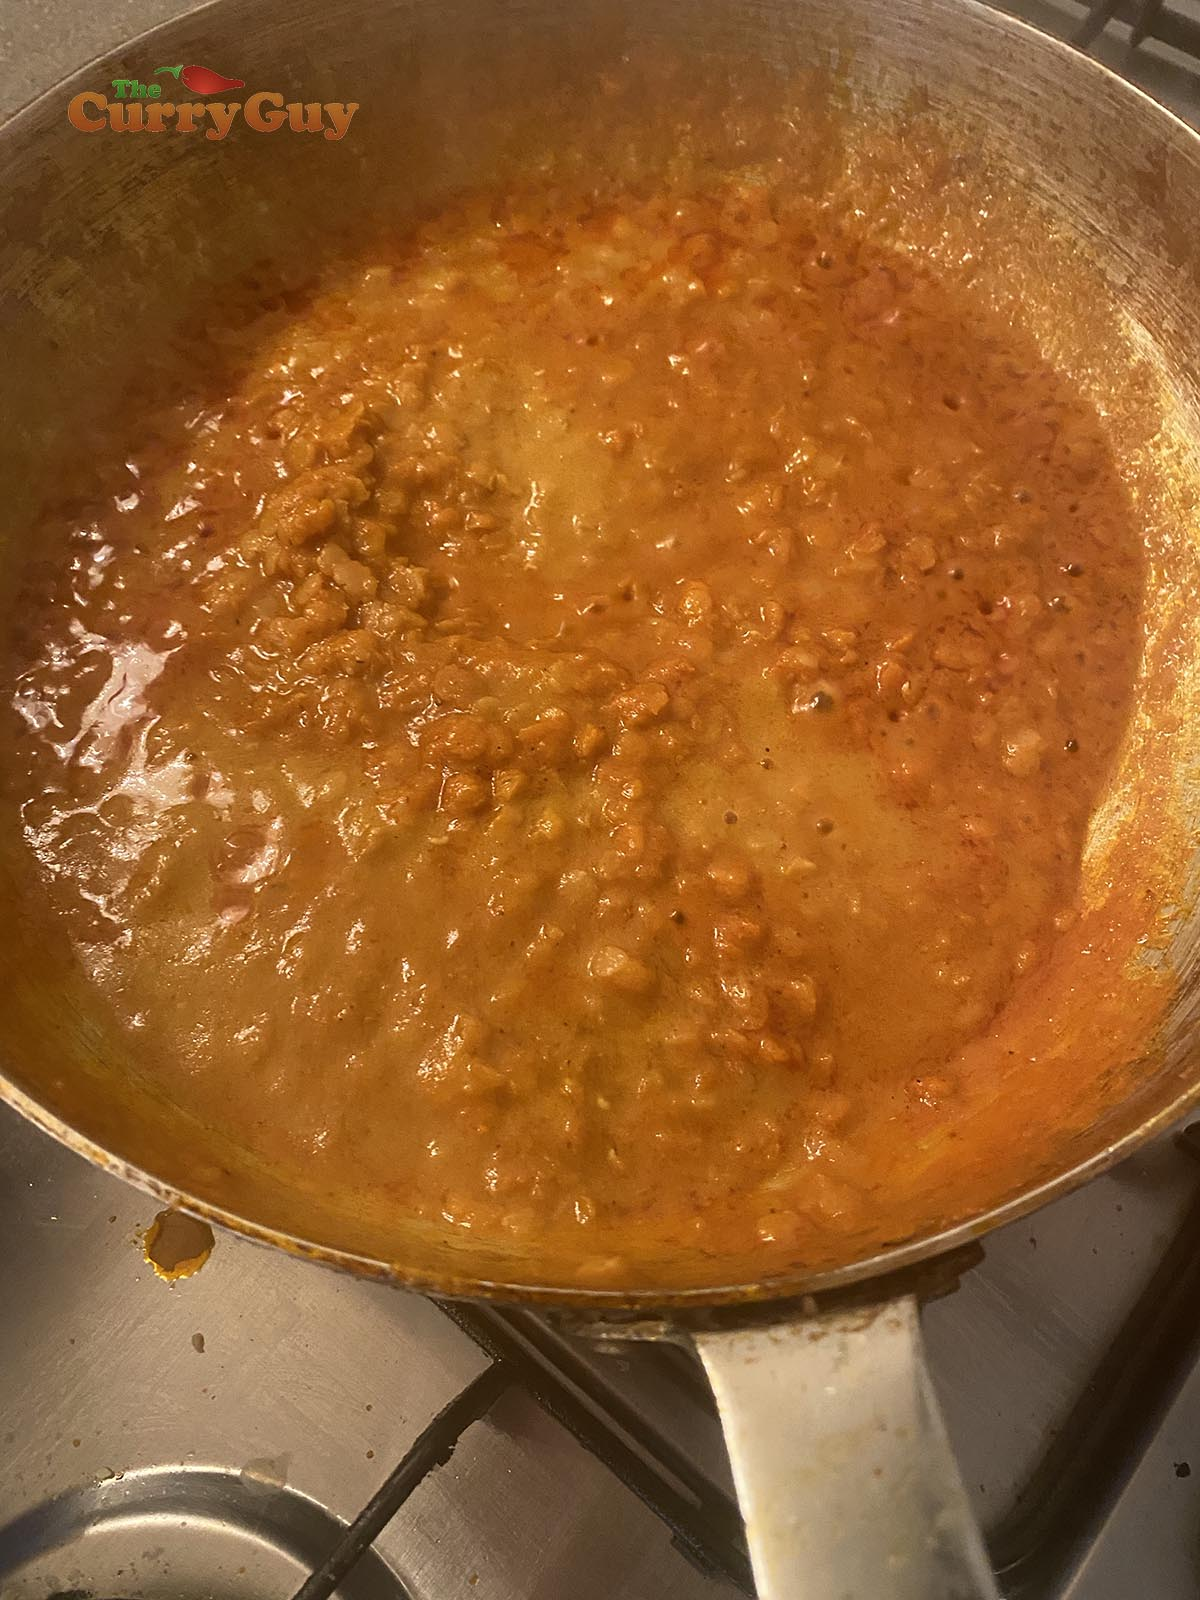 Adding base sauce and lentils